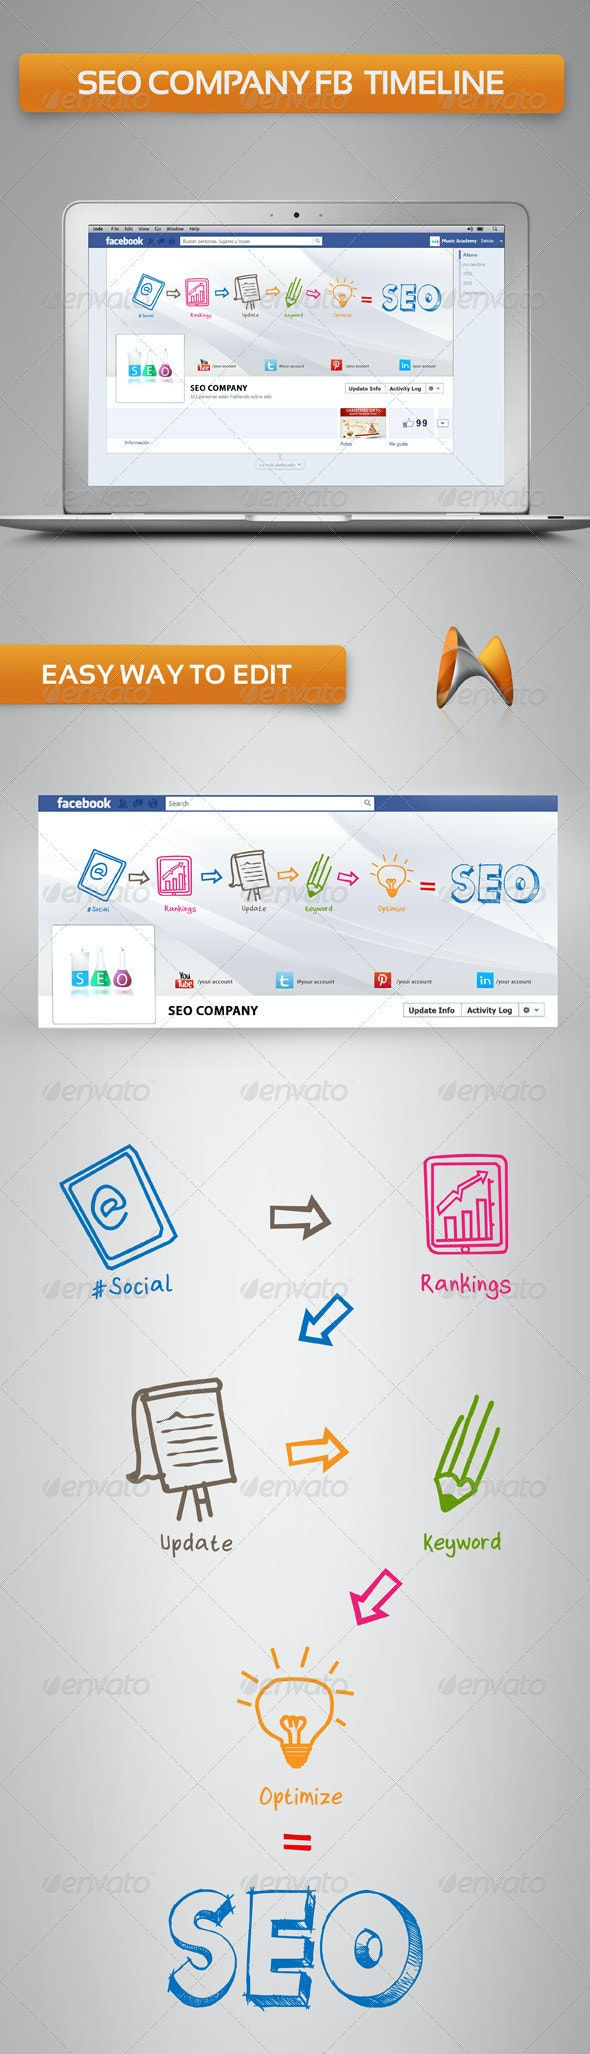 SEO Company FB Timeline - Facebook Timeline Covers Social Media